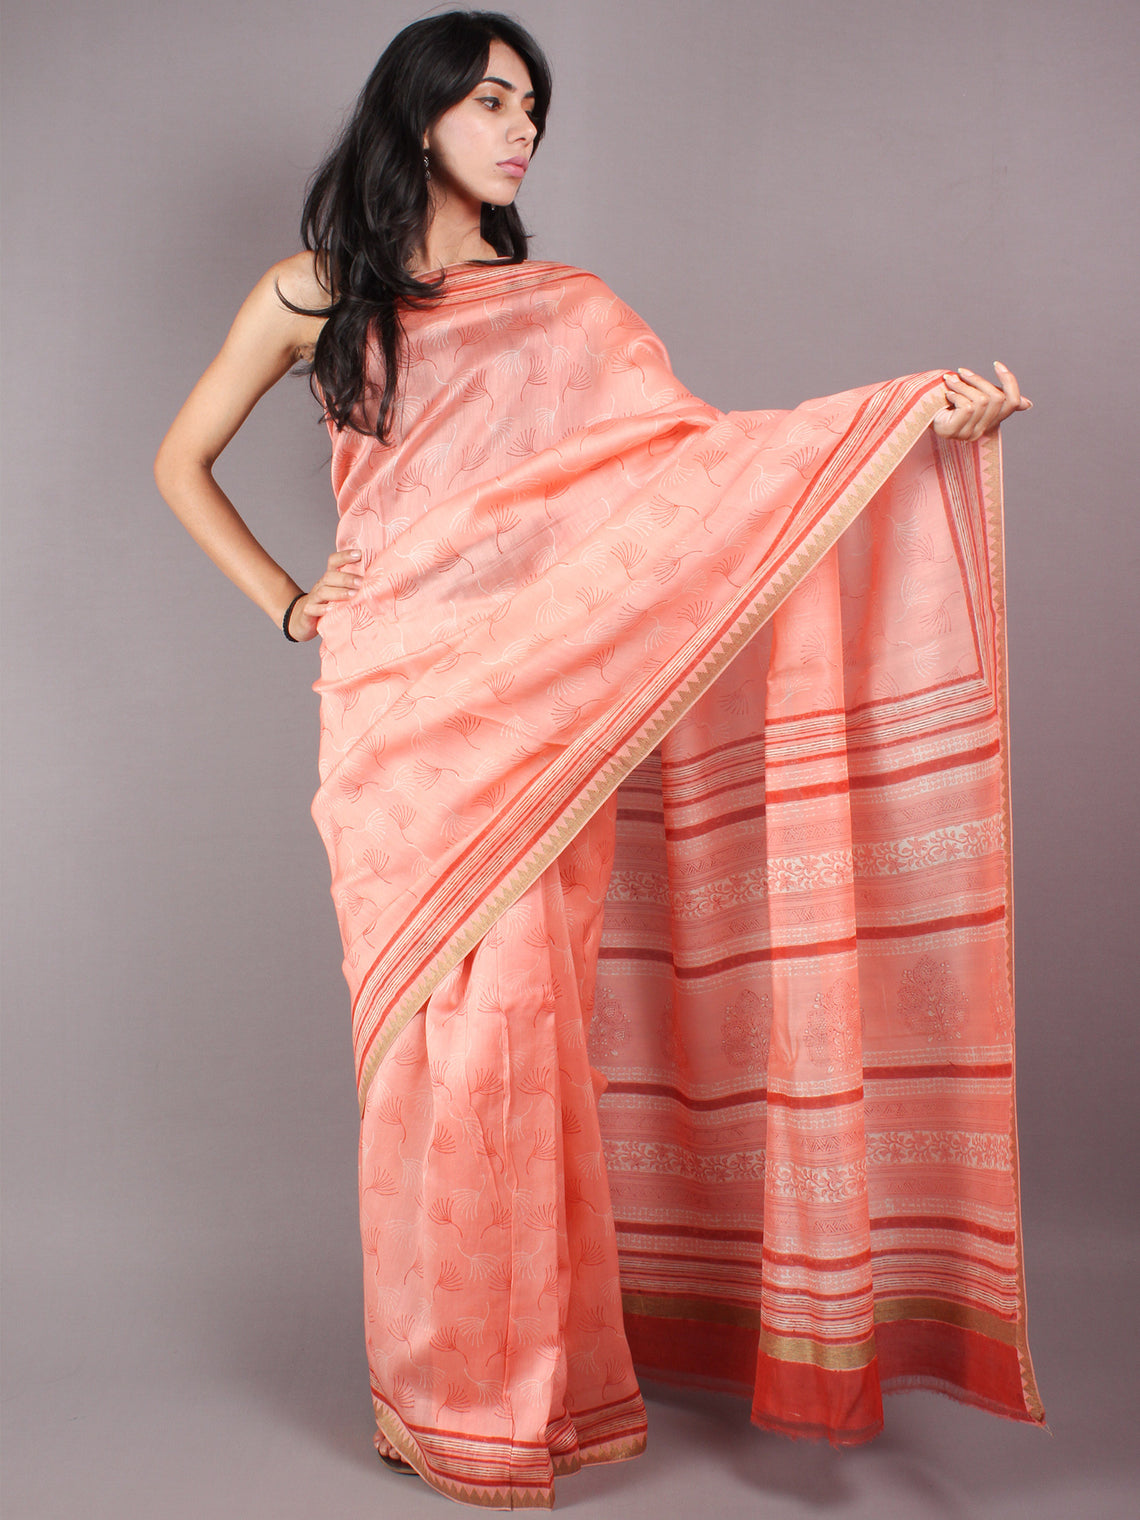 Peach Red Beige Hand Block Printed in Natural Vegetable Colors Chanderi Saree With Geecha Border - S03170321